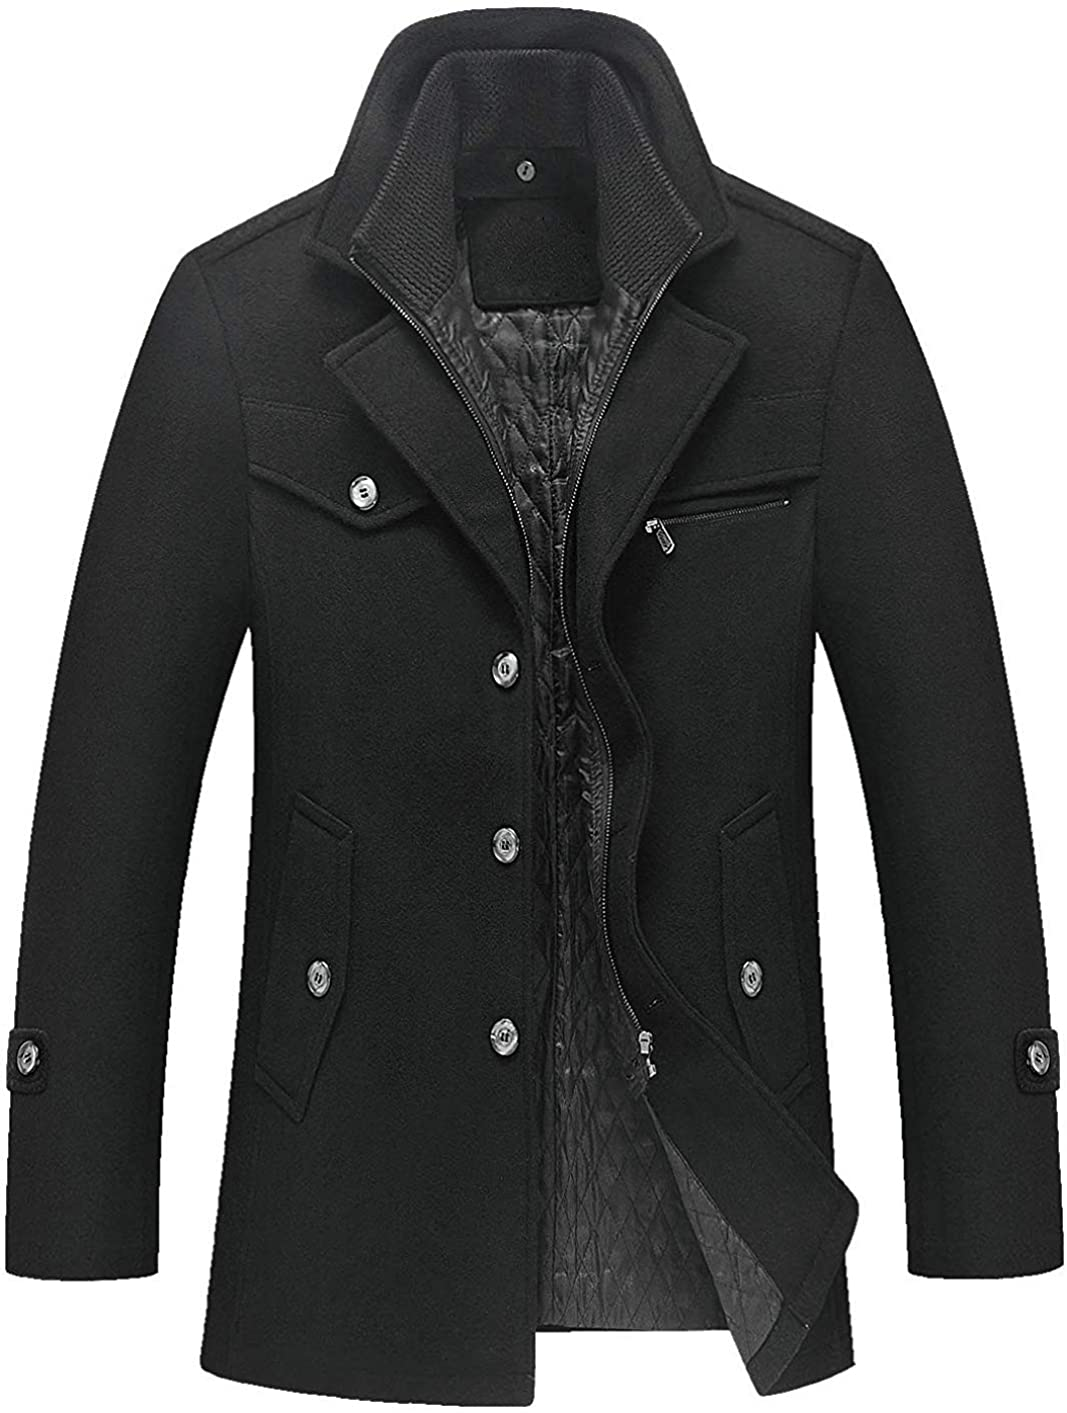 Gsdgjgg Men's Gentle Layered Collar Single Breasted Quilted Lined Wool Blend Pea Coats,Black,XX-Large